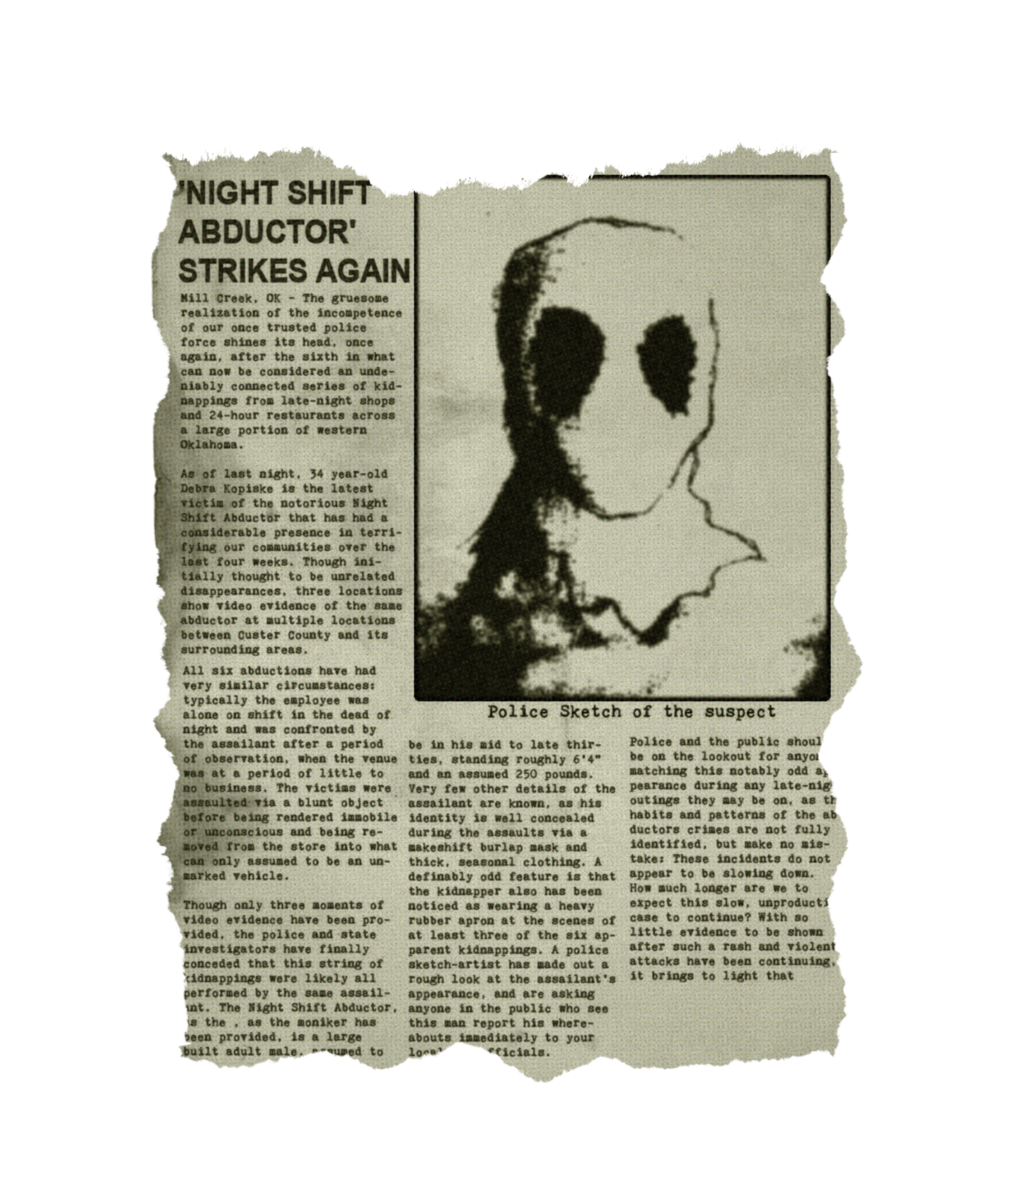 Puppet Combo On Twitter One Of The Newspaper Articles In Stay Out Of The House Police Sketch Drawing Revfreakshow Writing Ginose P Play The Game Https T Co Sdfdzqoi0j Gamedev Horror Https T Co Cbj2akg3ao